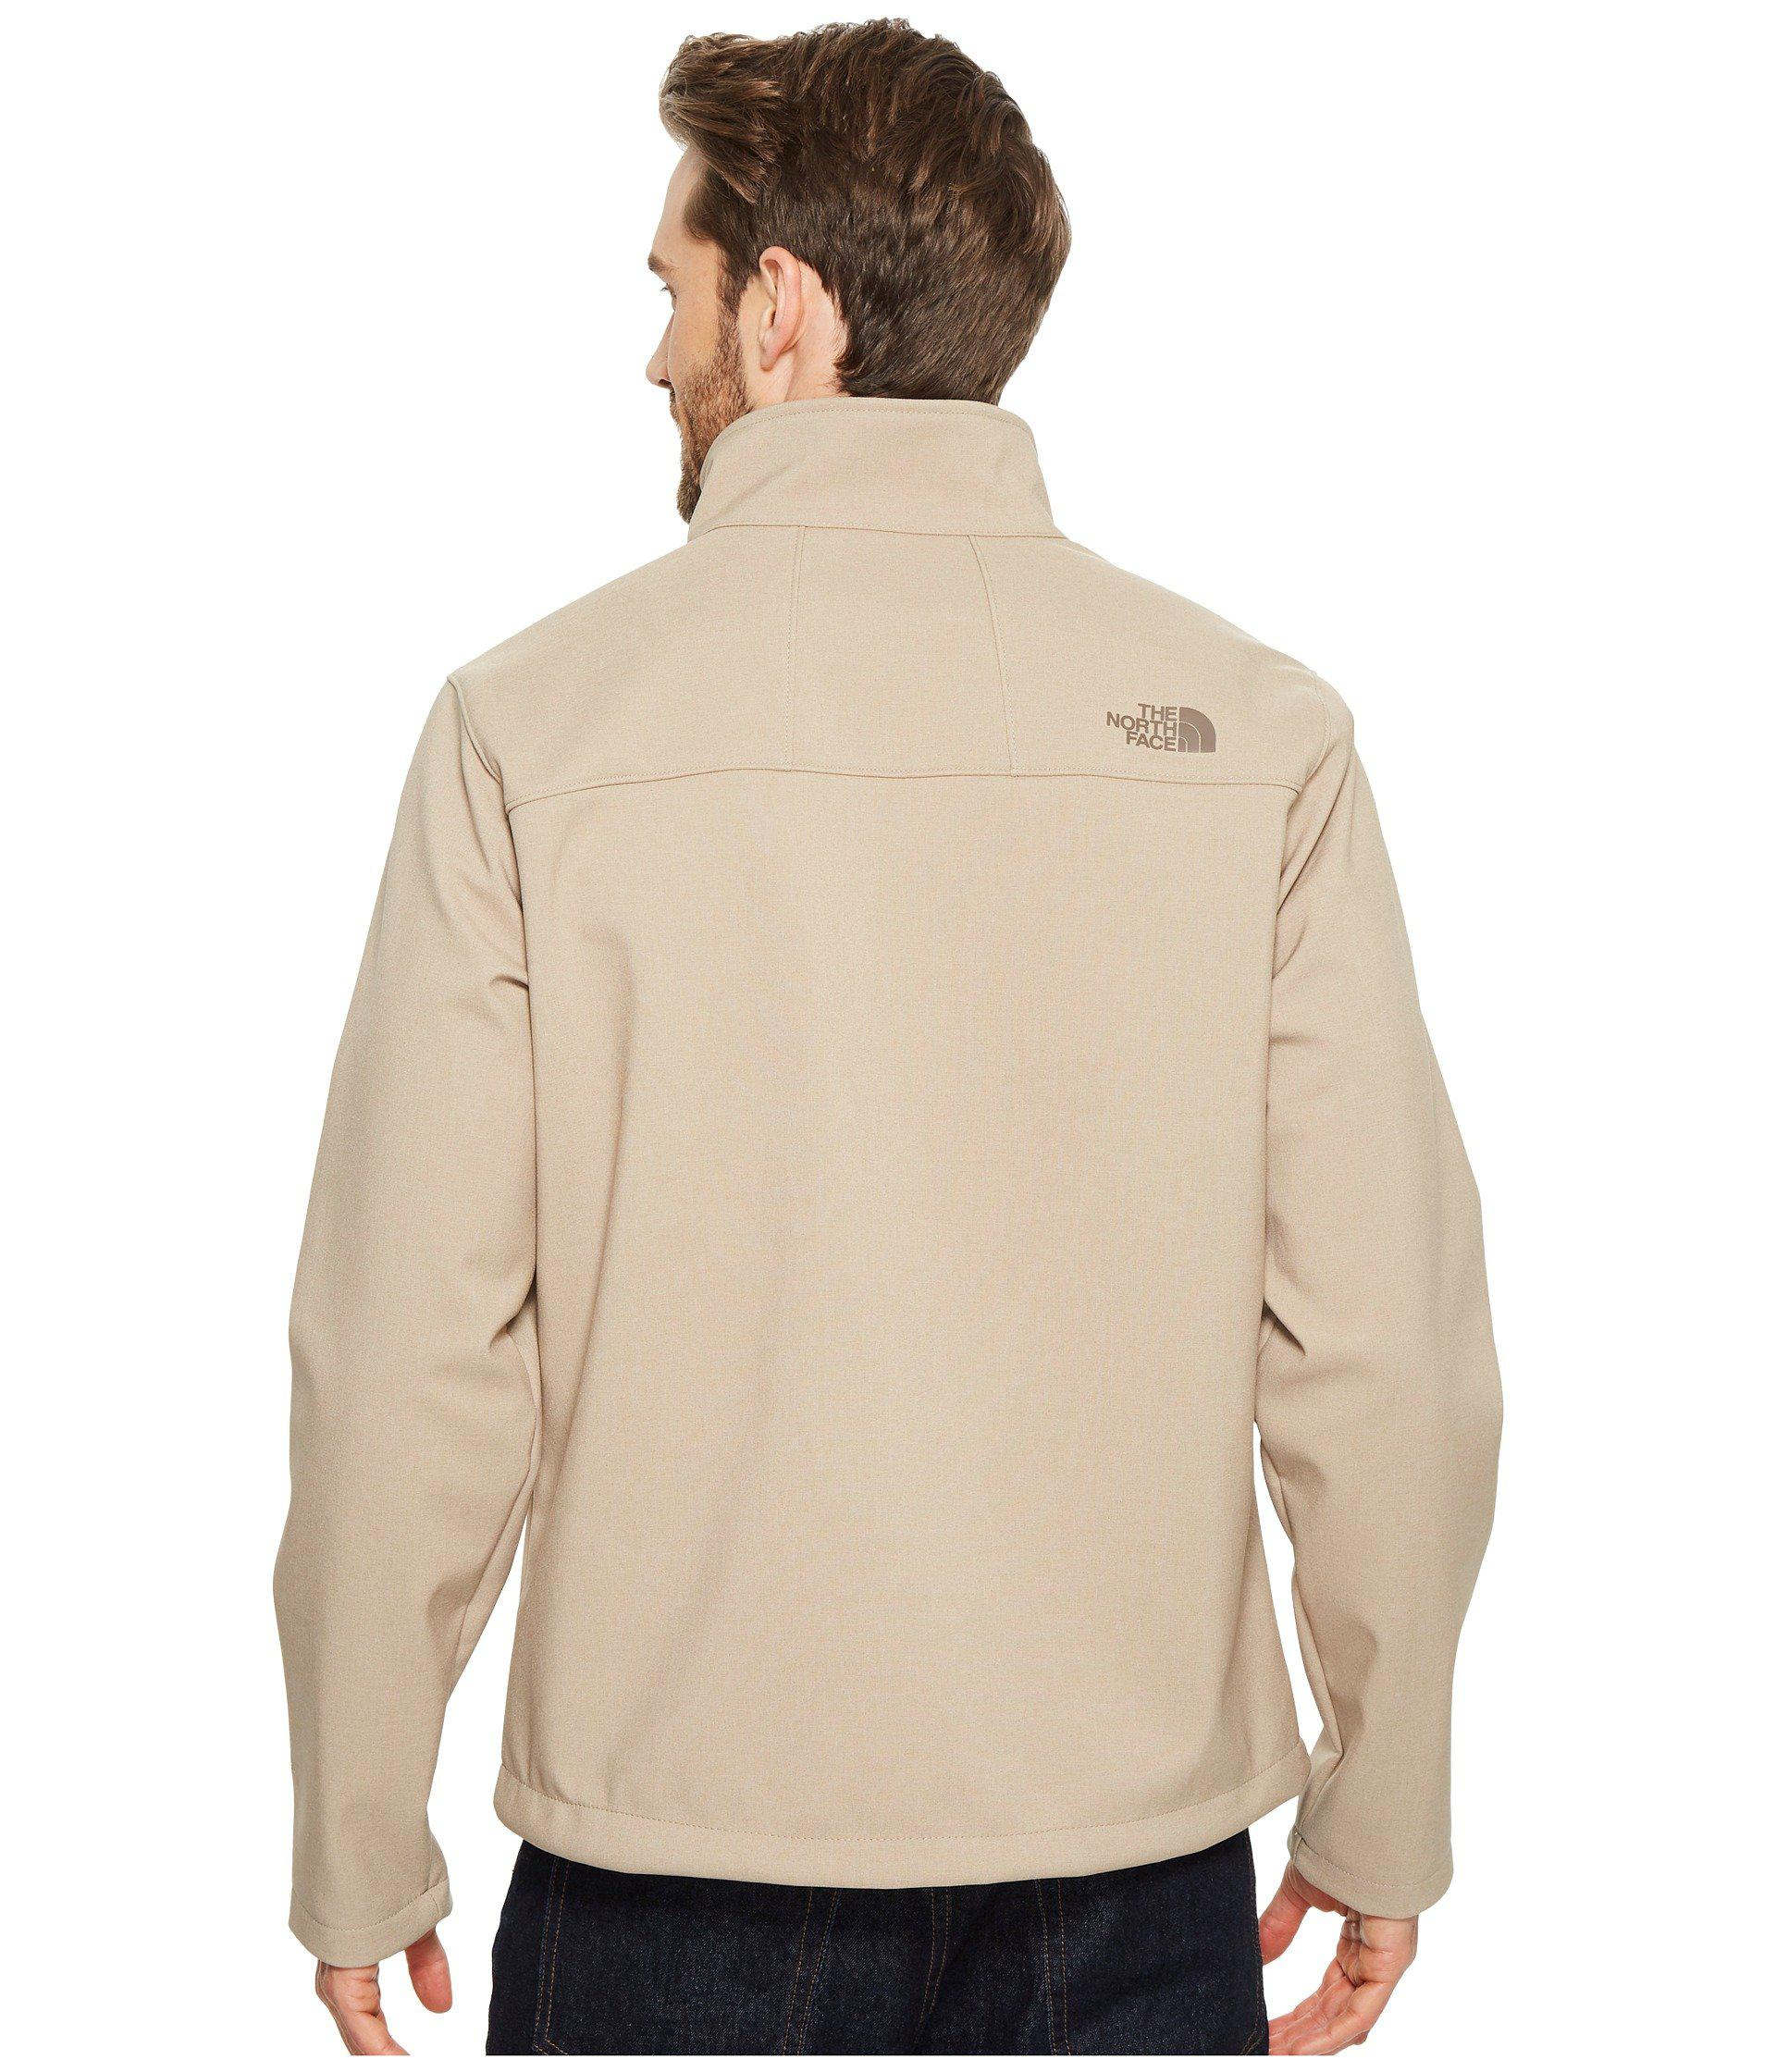 f48f3e17a Lyst - The North Face Apex Bionic 2 Jacket in Natural for Men